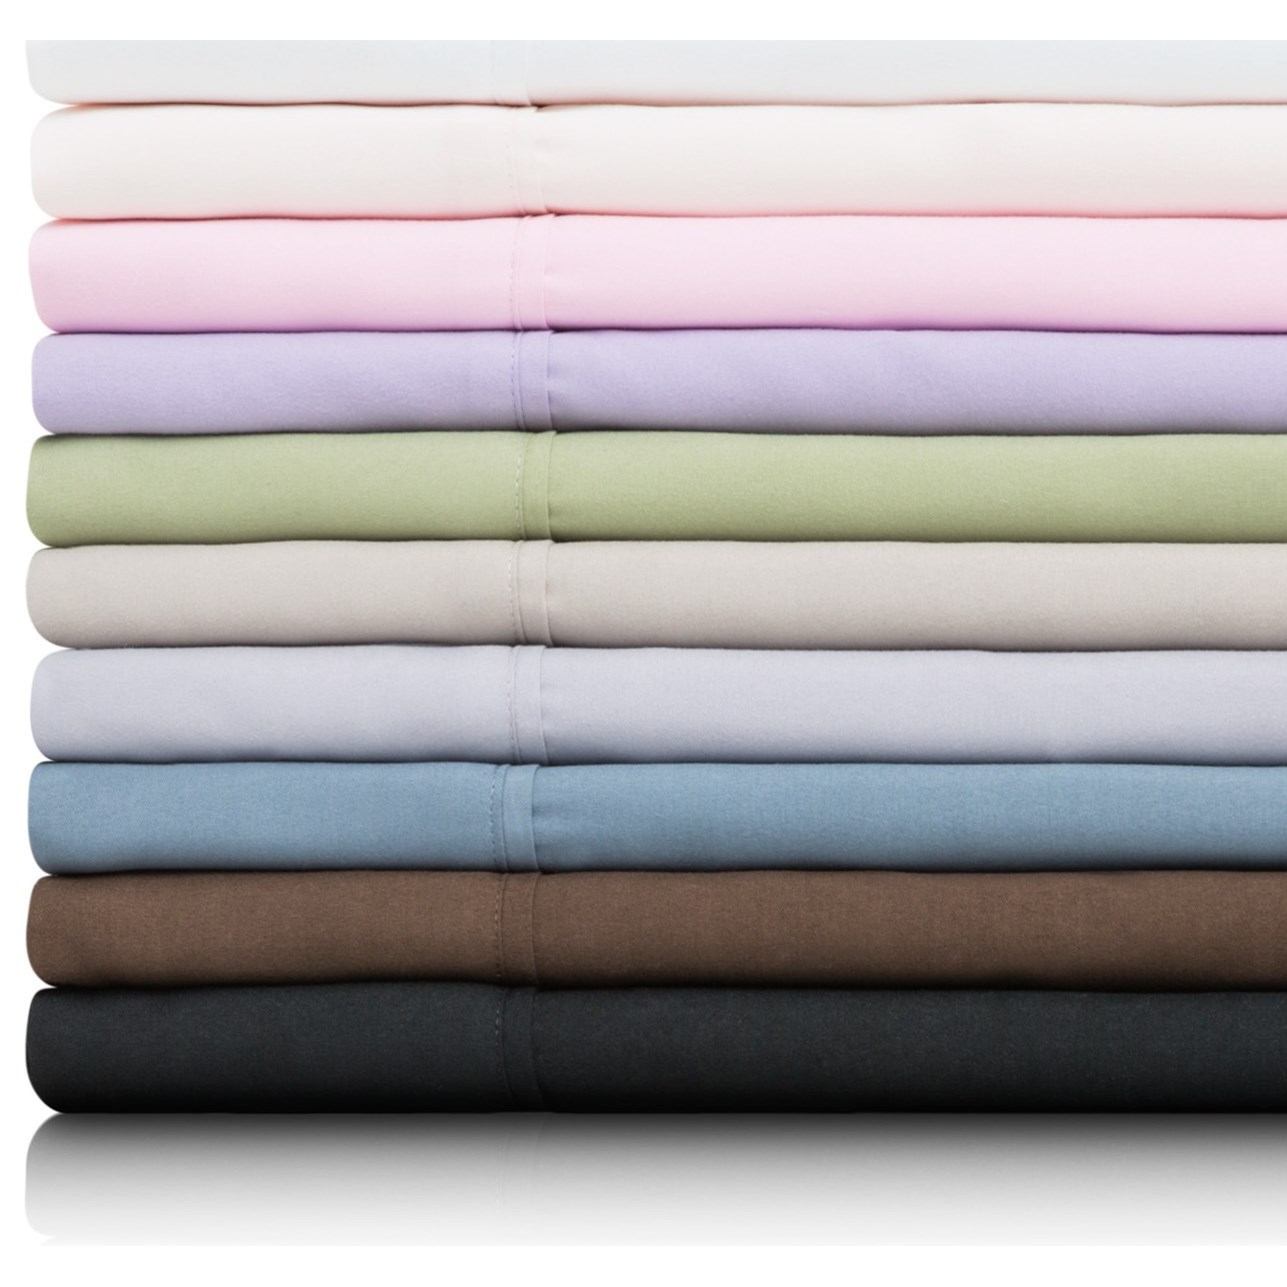 Malouf Brushed Microfiber Twin Woven™ Brushed Microfiber Sheet Set - Item Number: MA90TTASMS